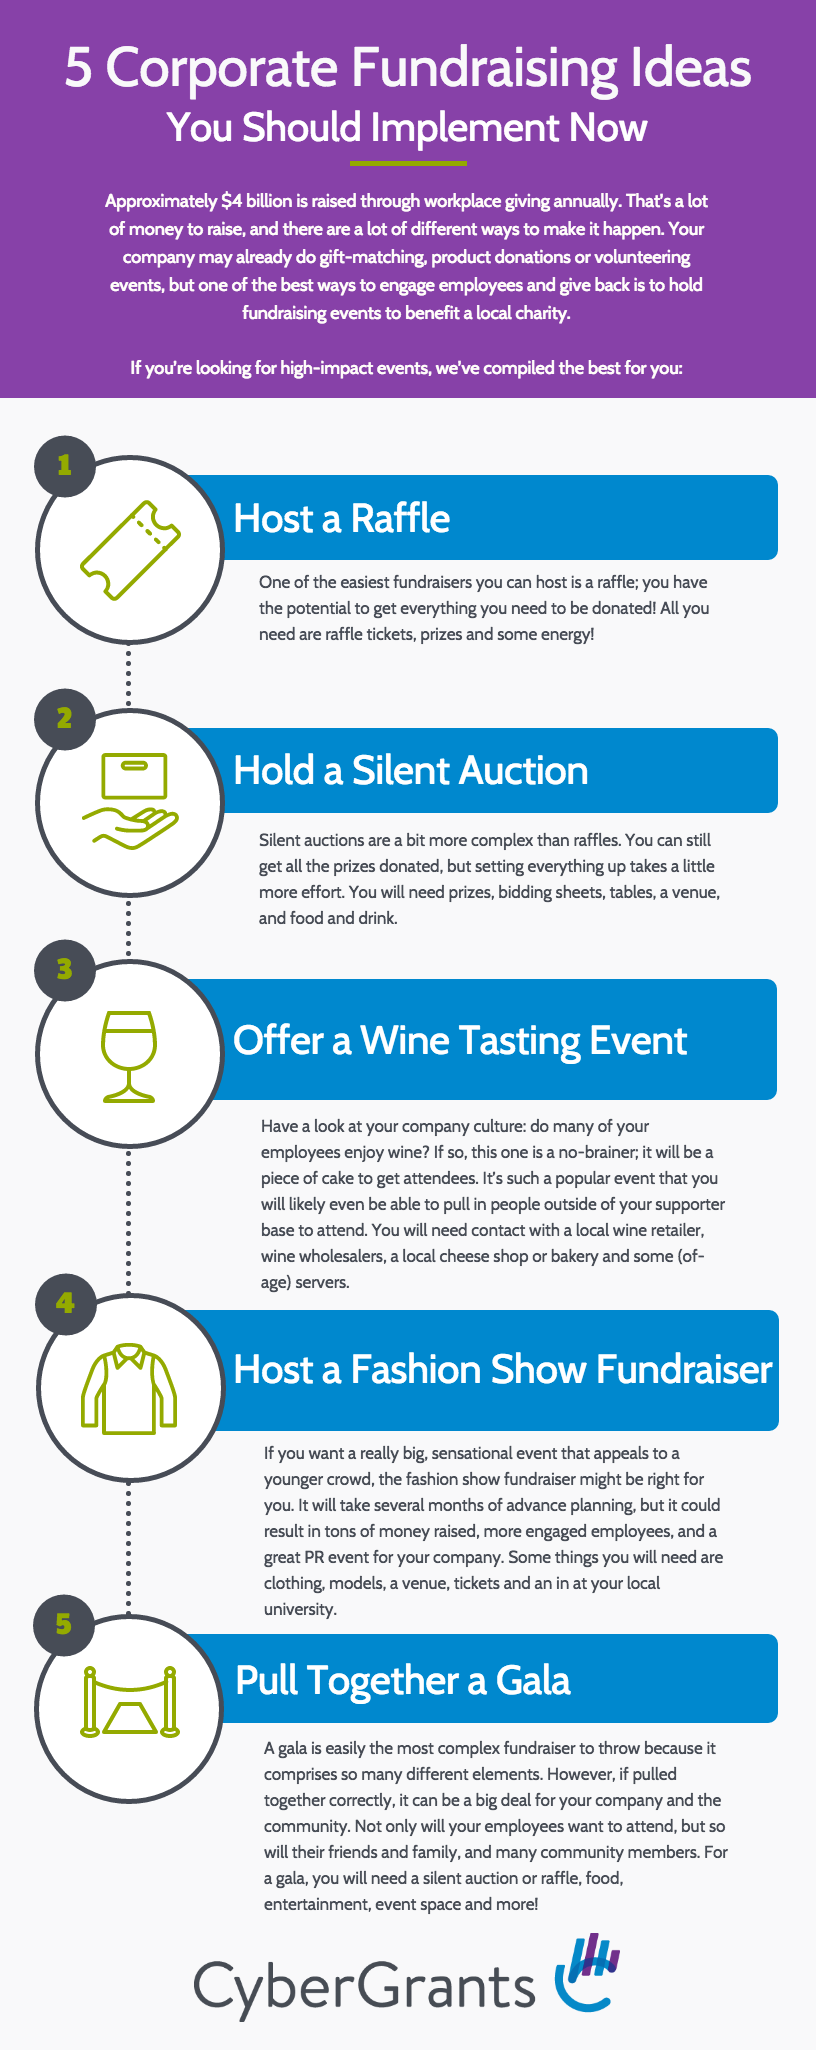 15 Corporate Fundraising Ideas You Should Implement Now